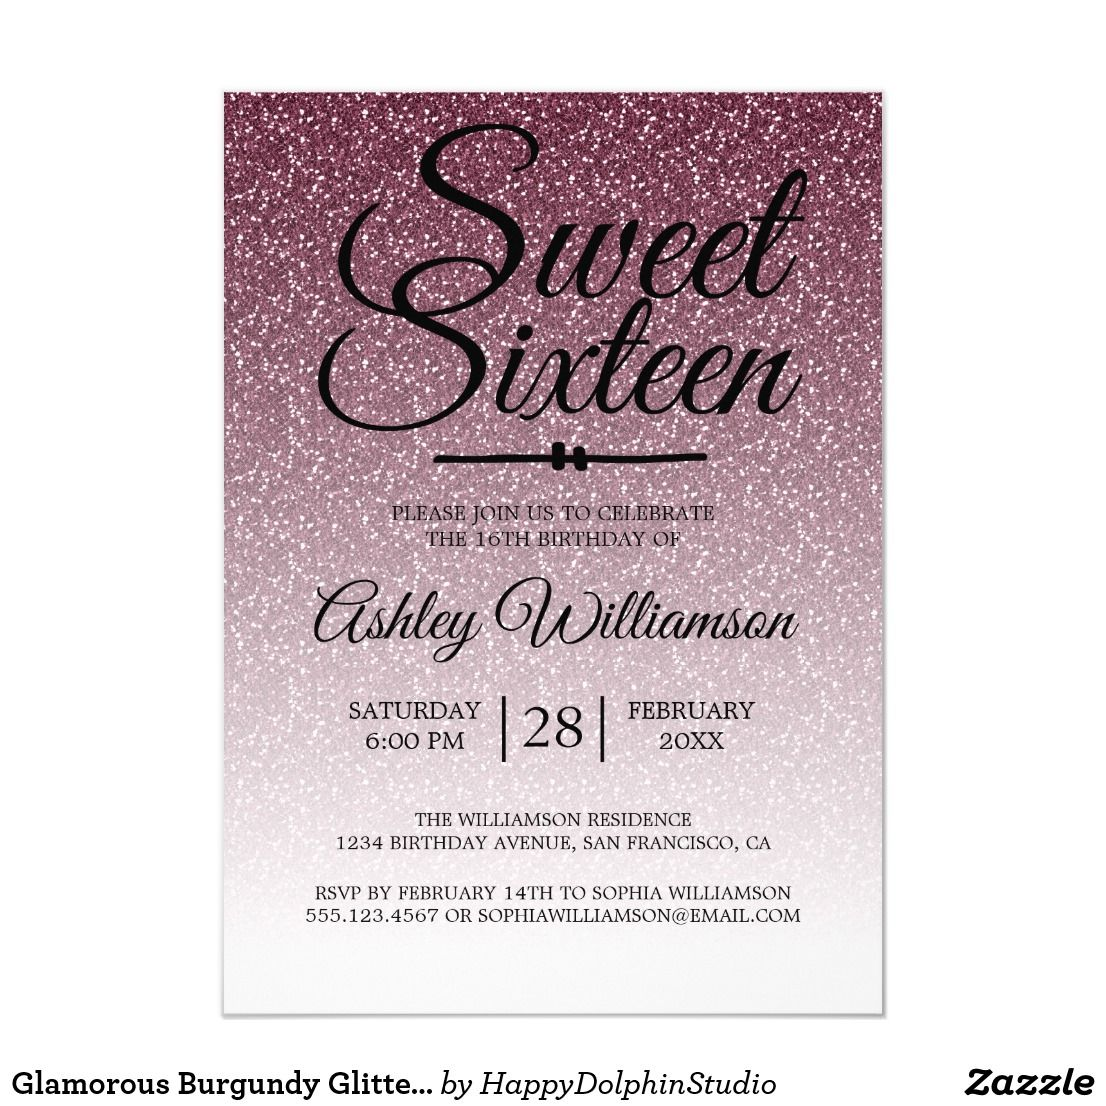 Glamorous Burgundy Glitter Ombre Sweet 16 Birthday Invitation